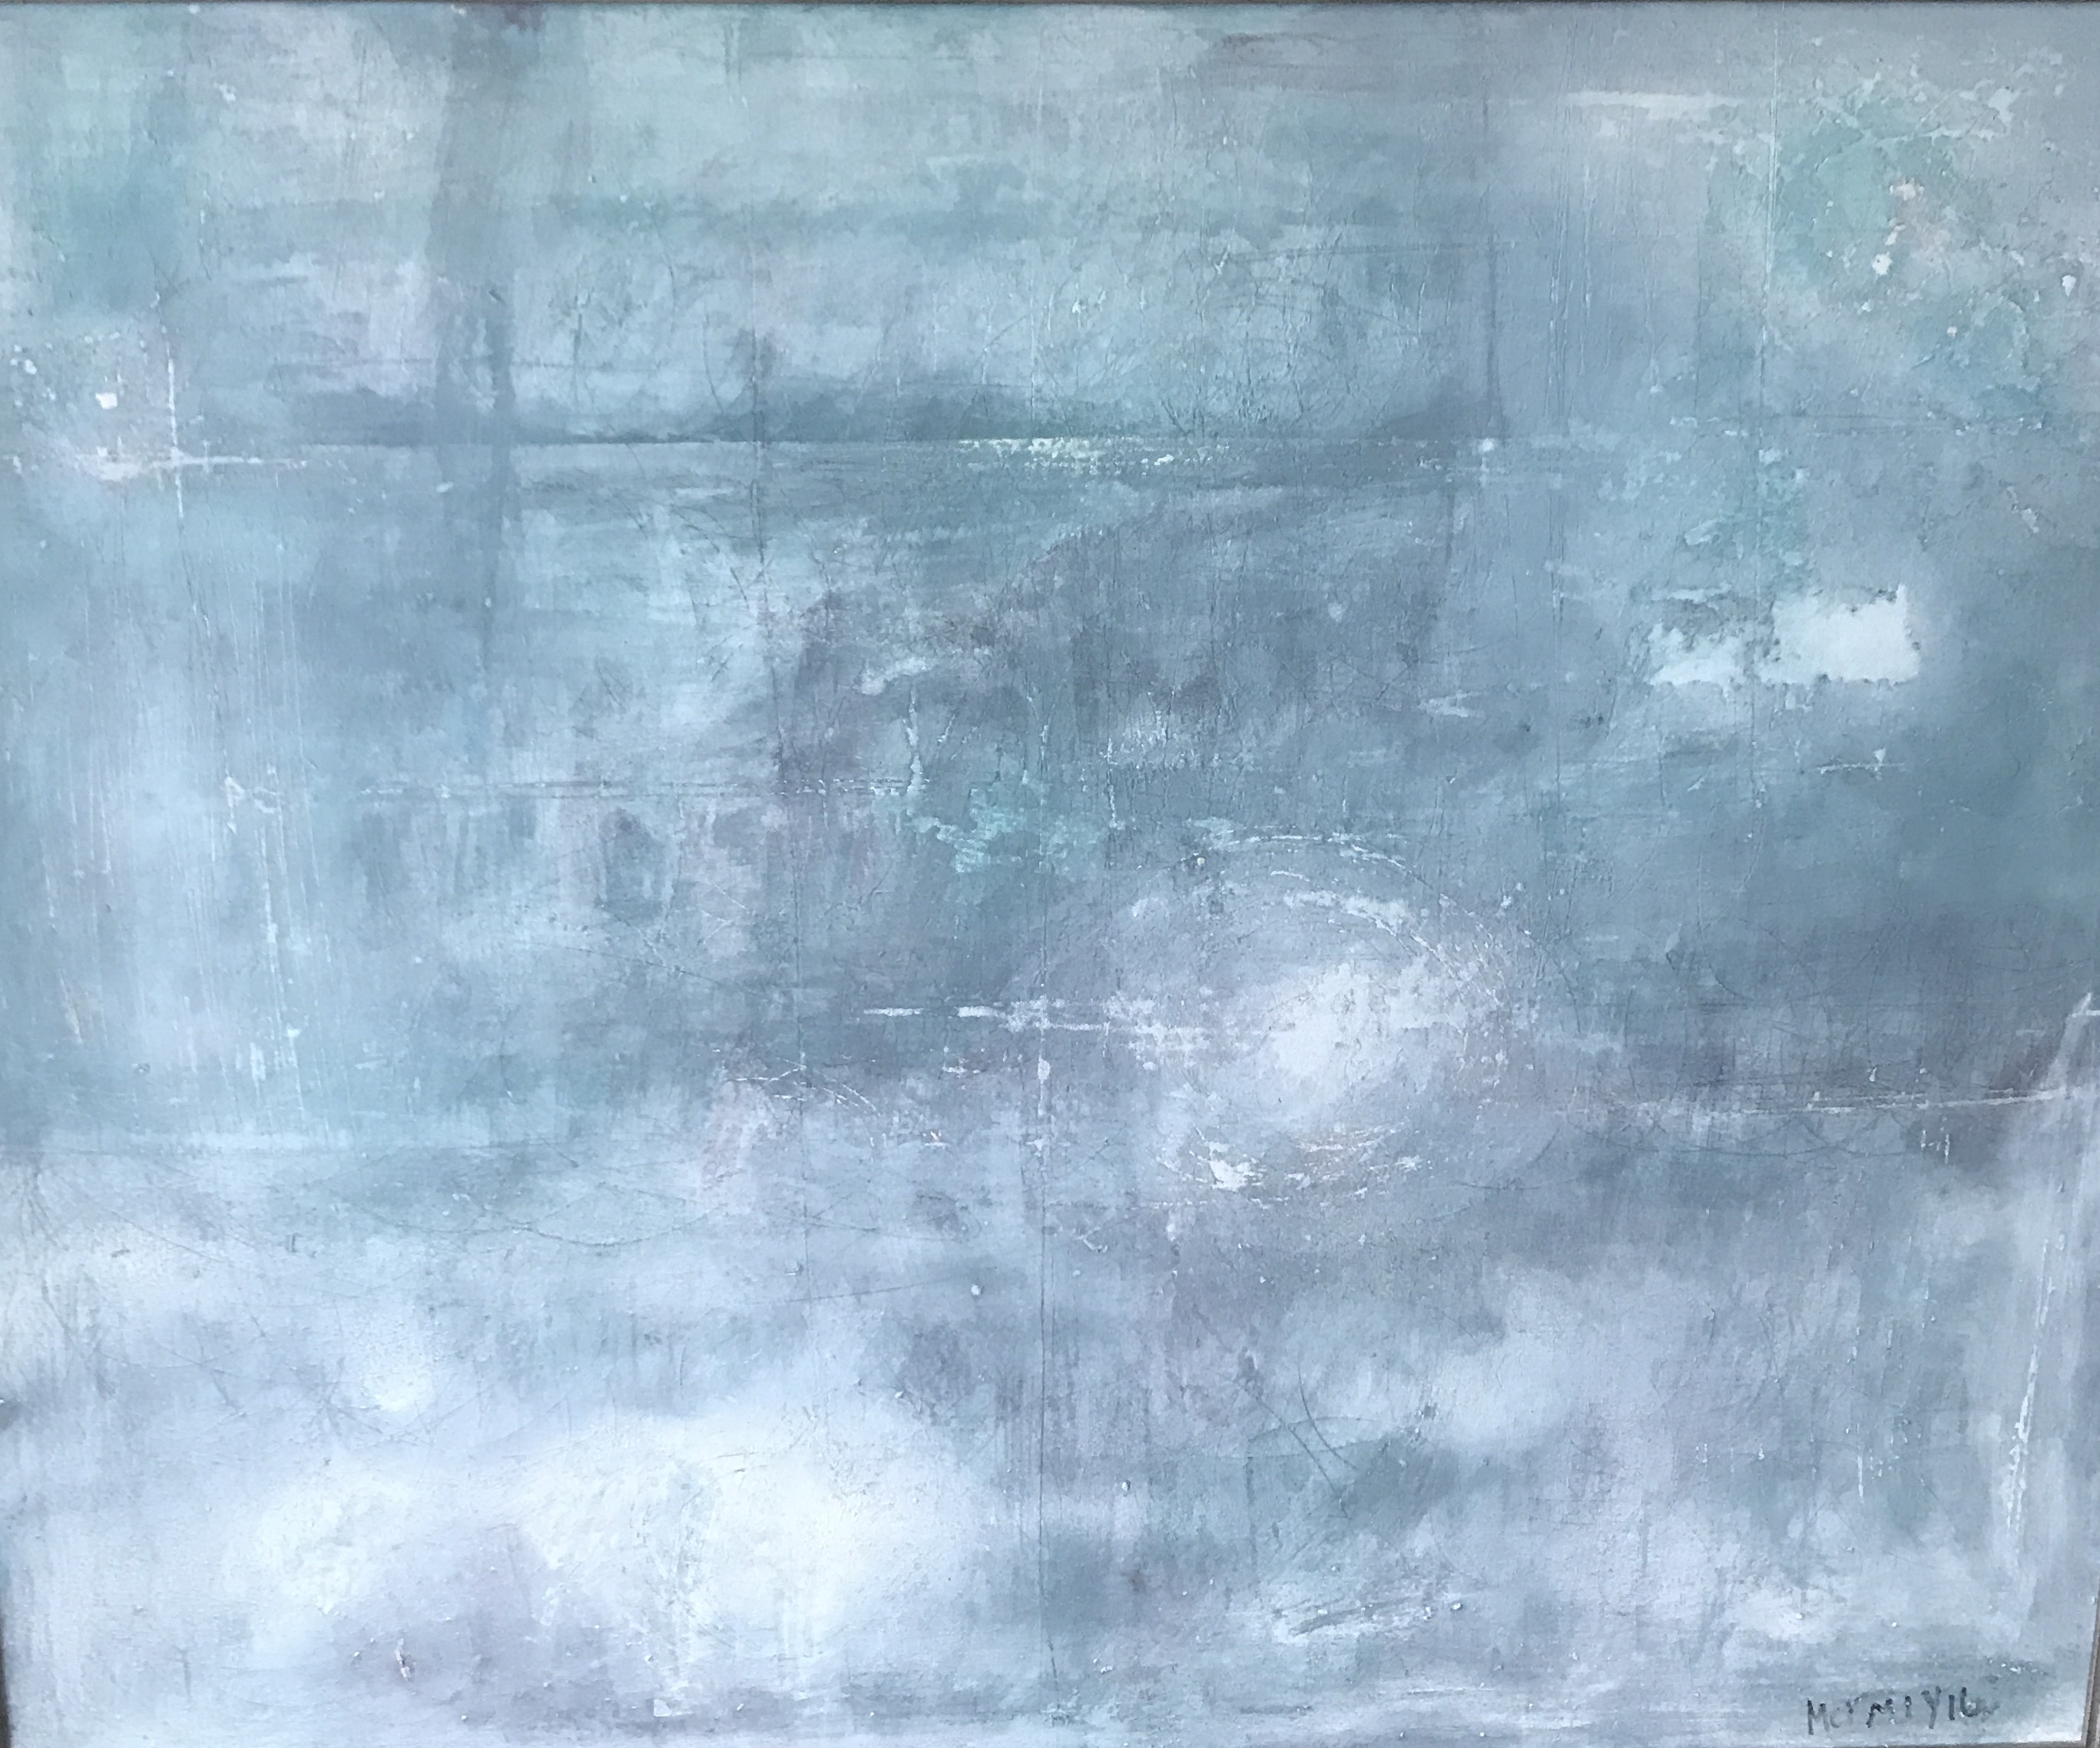 MCFM1Y16 artwork by Michael Fitzpatrick - art listed for sale on Artplode